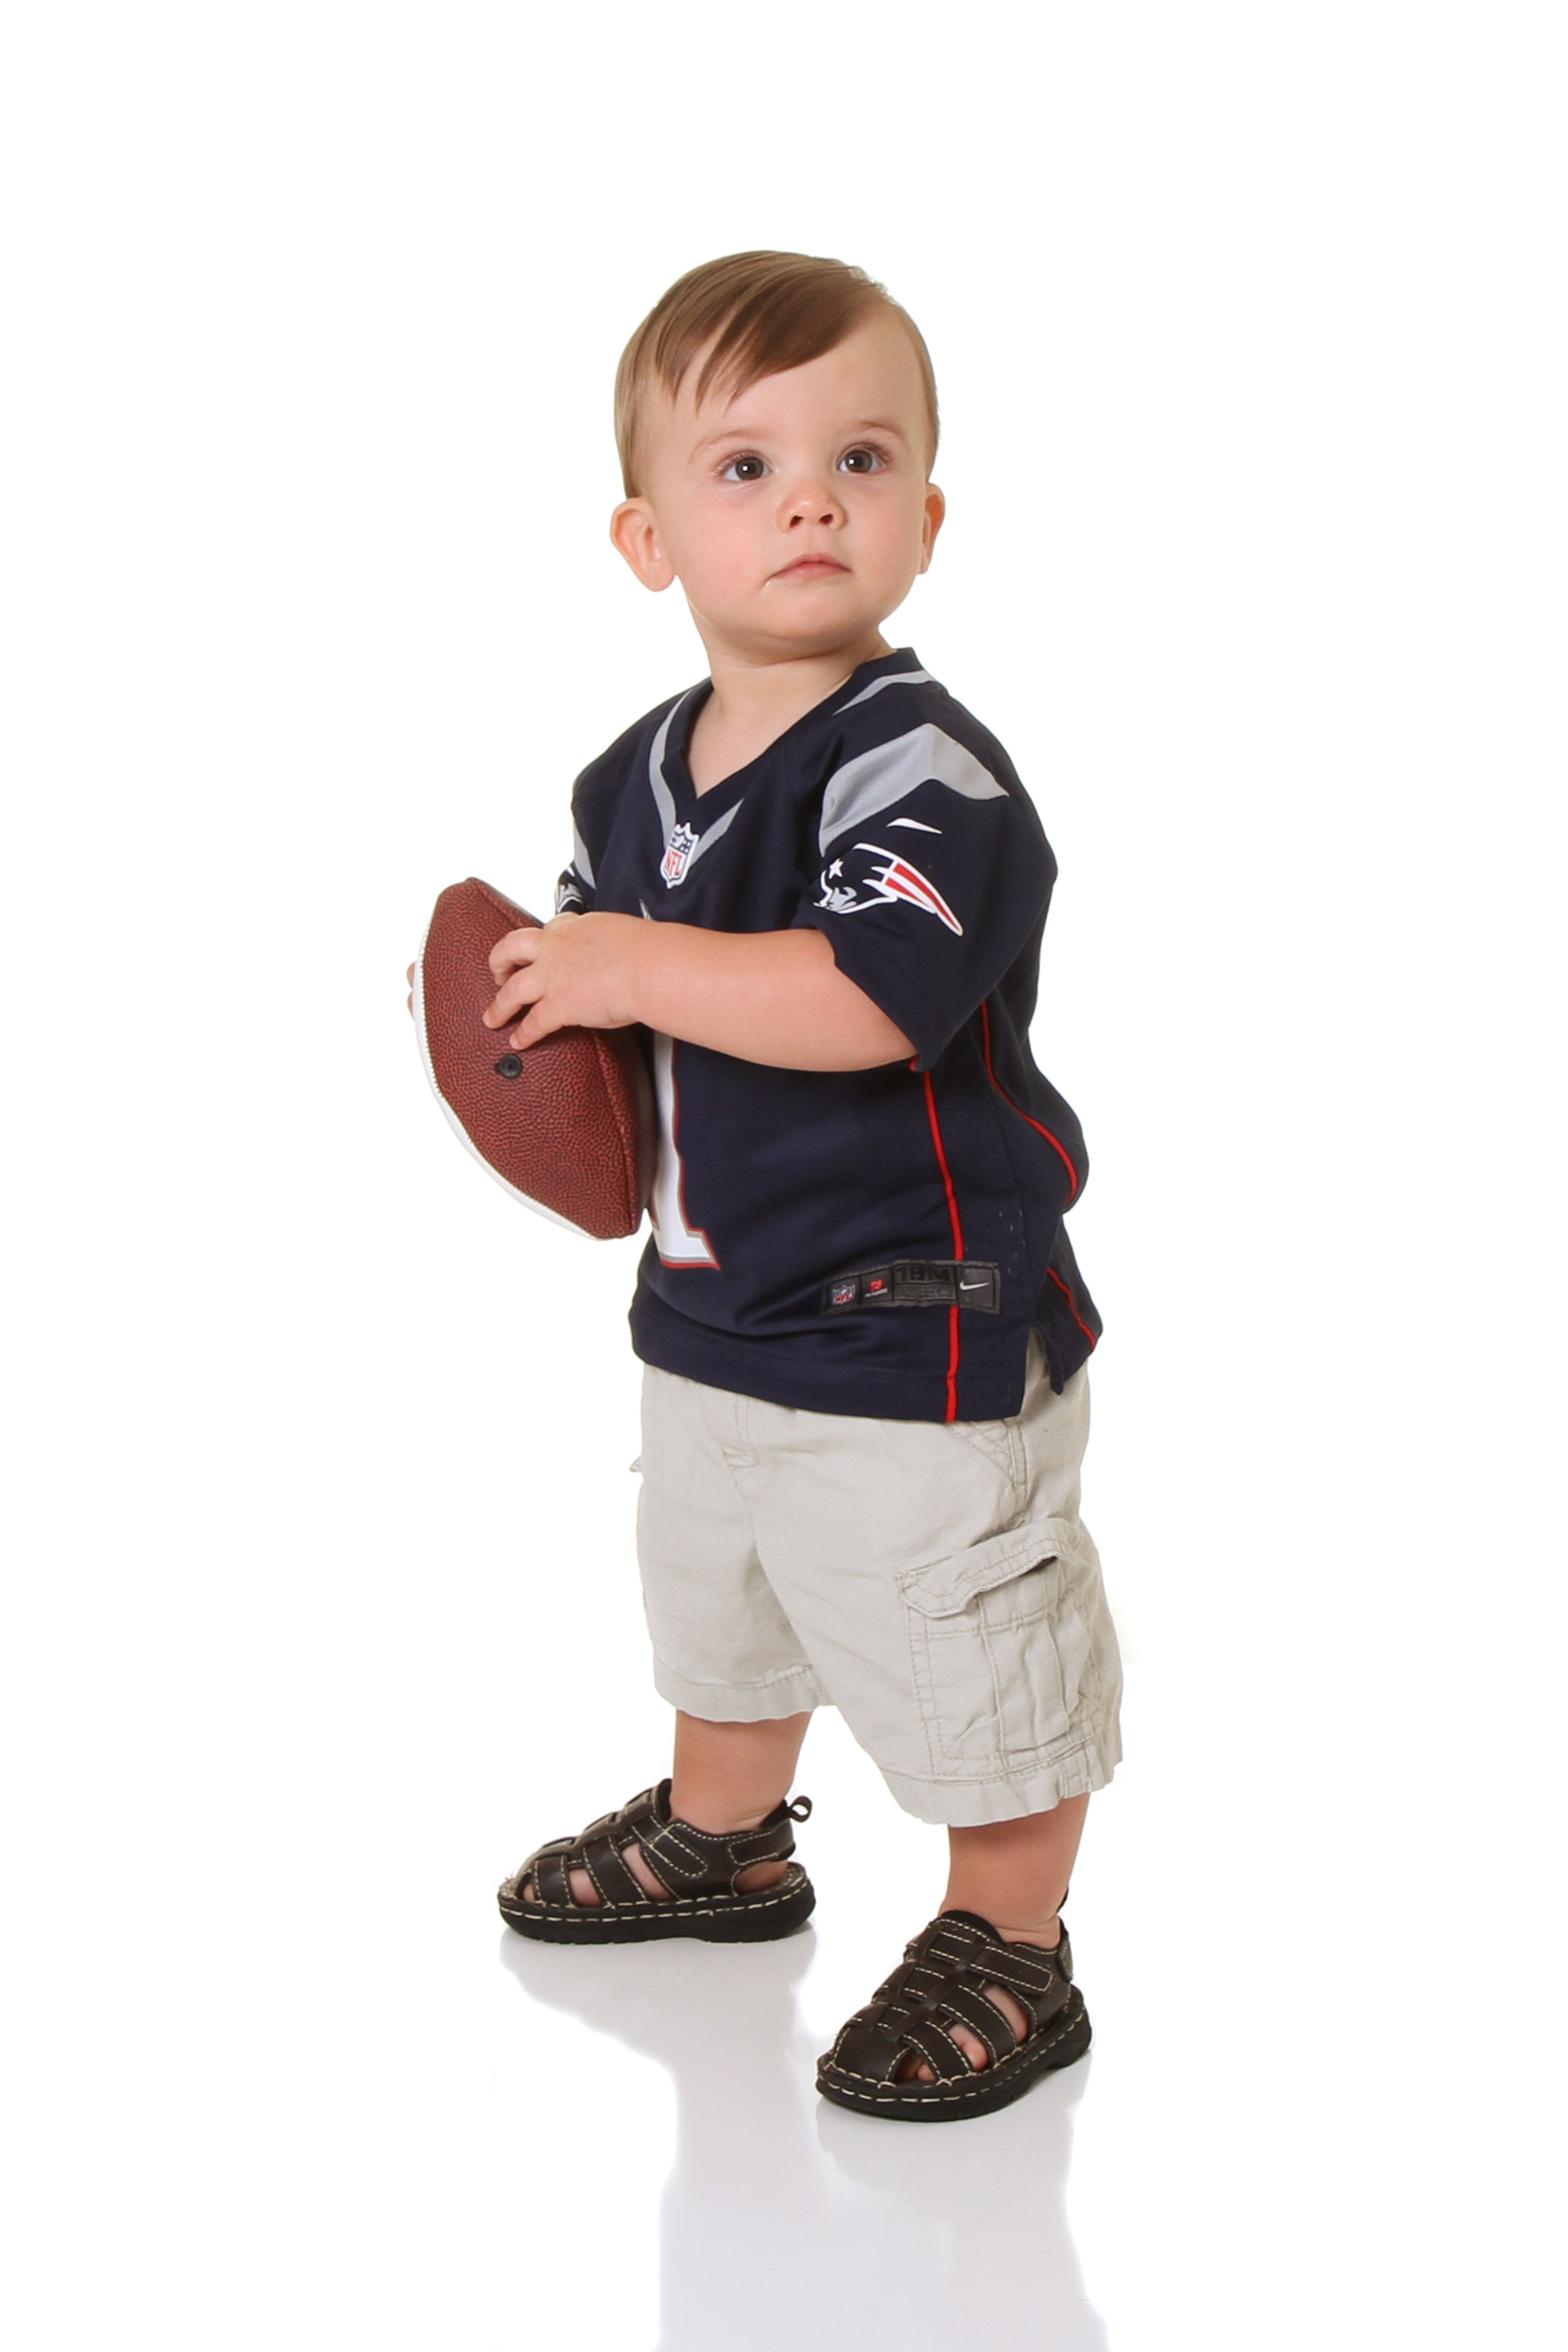 This Is A Sign Of Good Parenting Pats New England Patriots Patriots Fans Baby Pictures